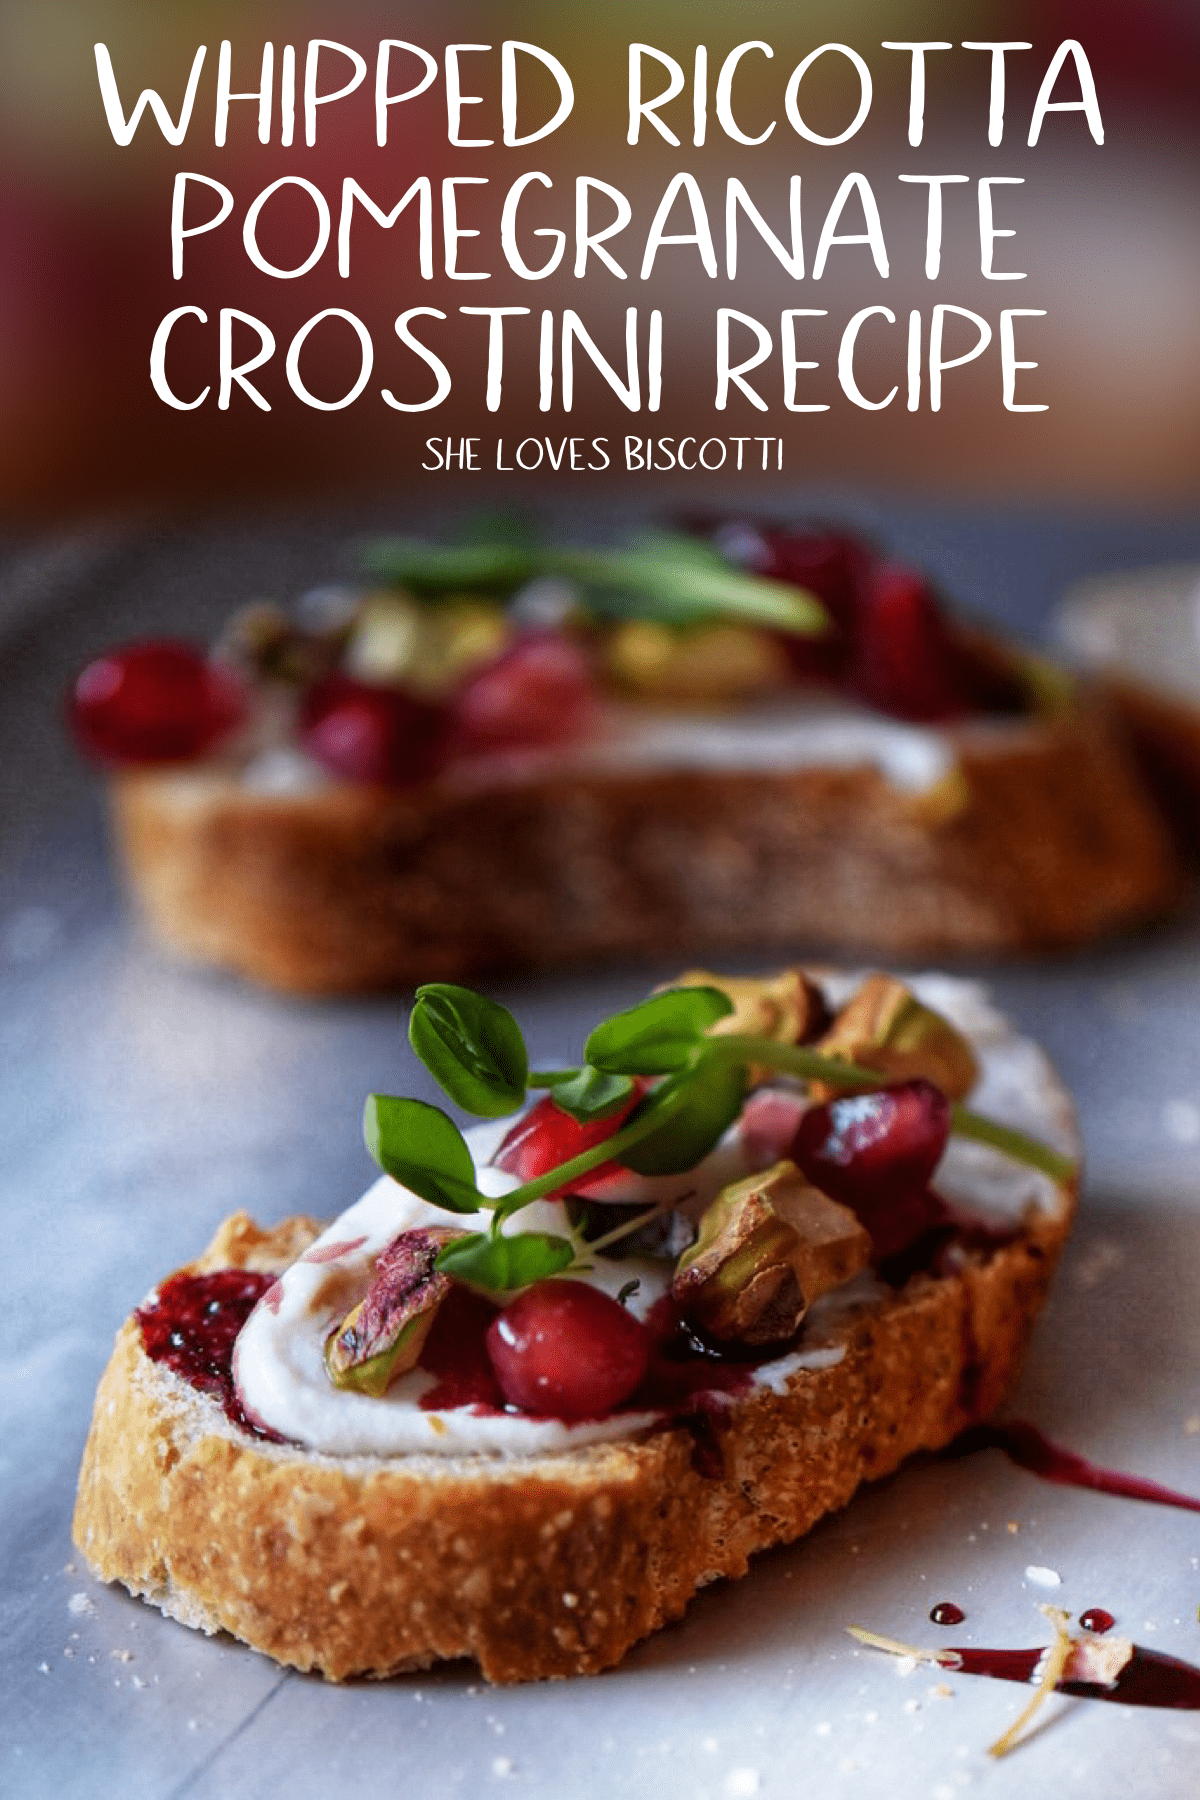 Whipped Ricotta Pomegranate Crostini Recipe: The perfect appetizer!  #shelovesbiscotti #ricottacrostini #appetizer #pomegranate #crostinirecipe #baguettes #holidayappetizers #superbowlappetizer